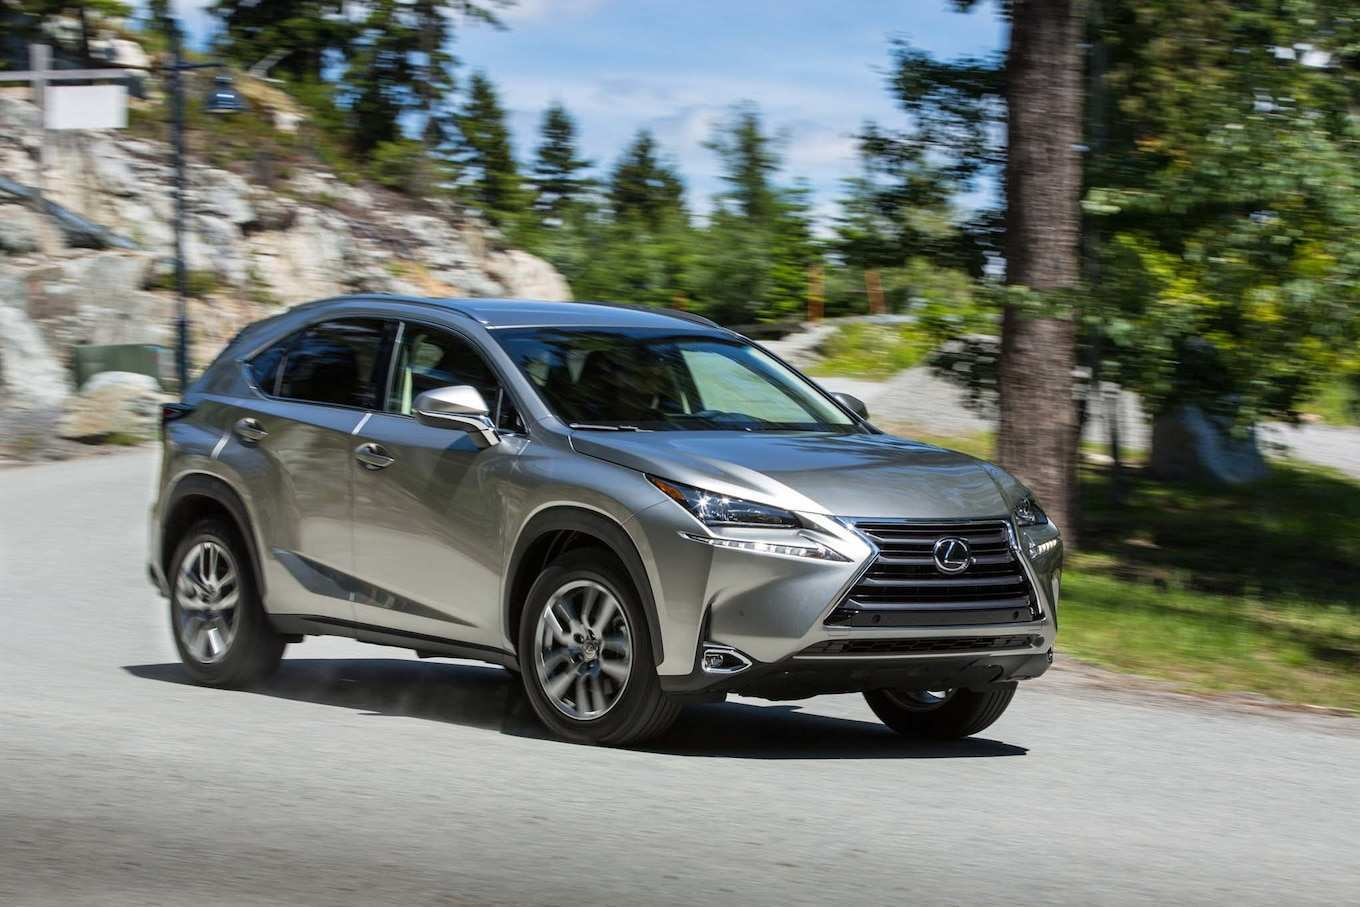 64 New 2020 Lexus Nx200 Overview by 2020 Lexus Nx200